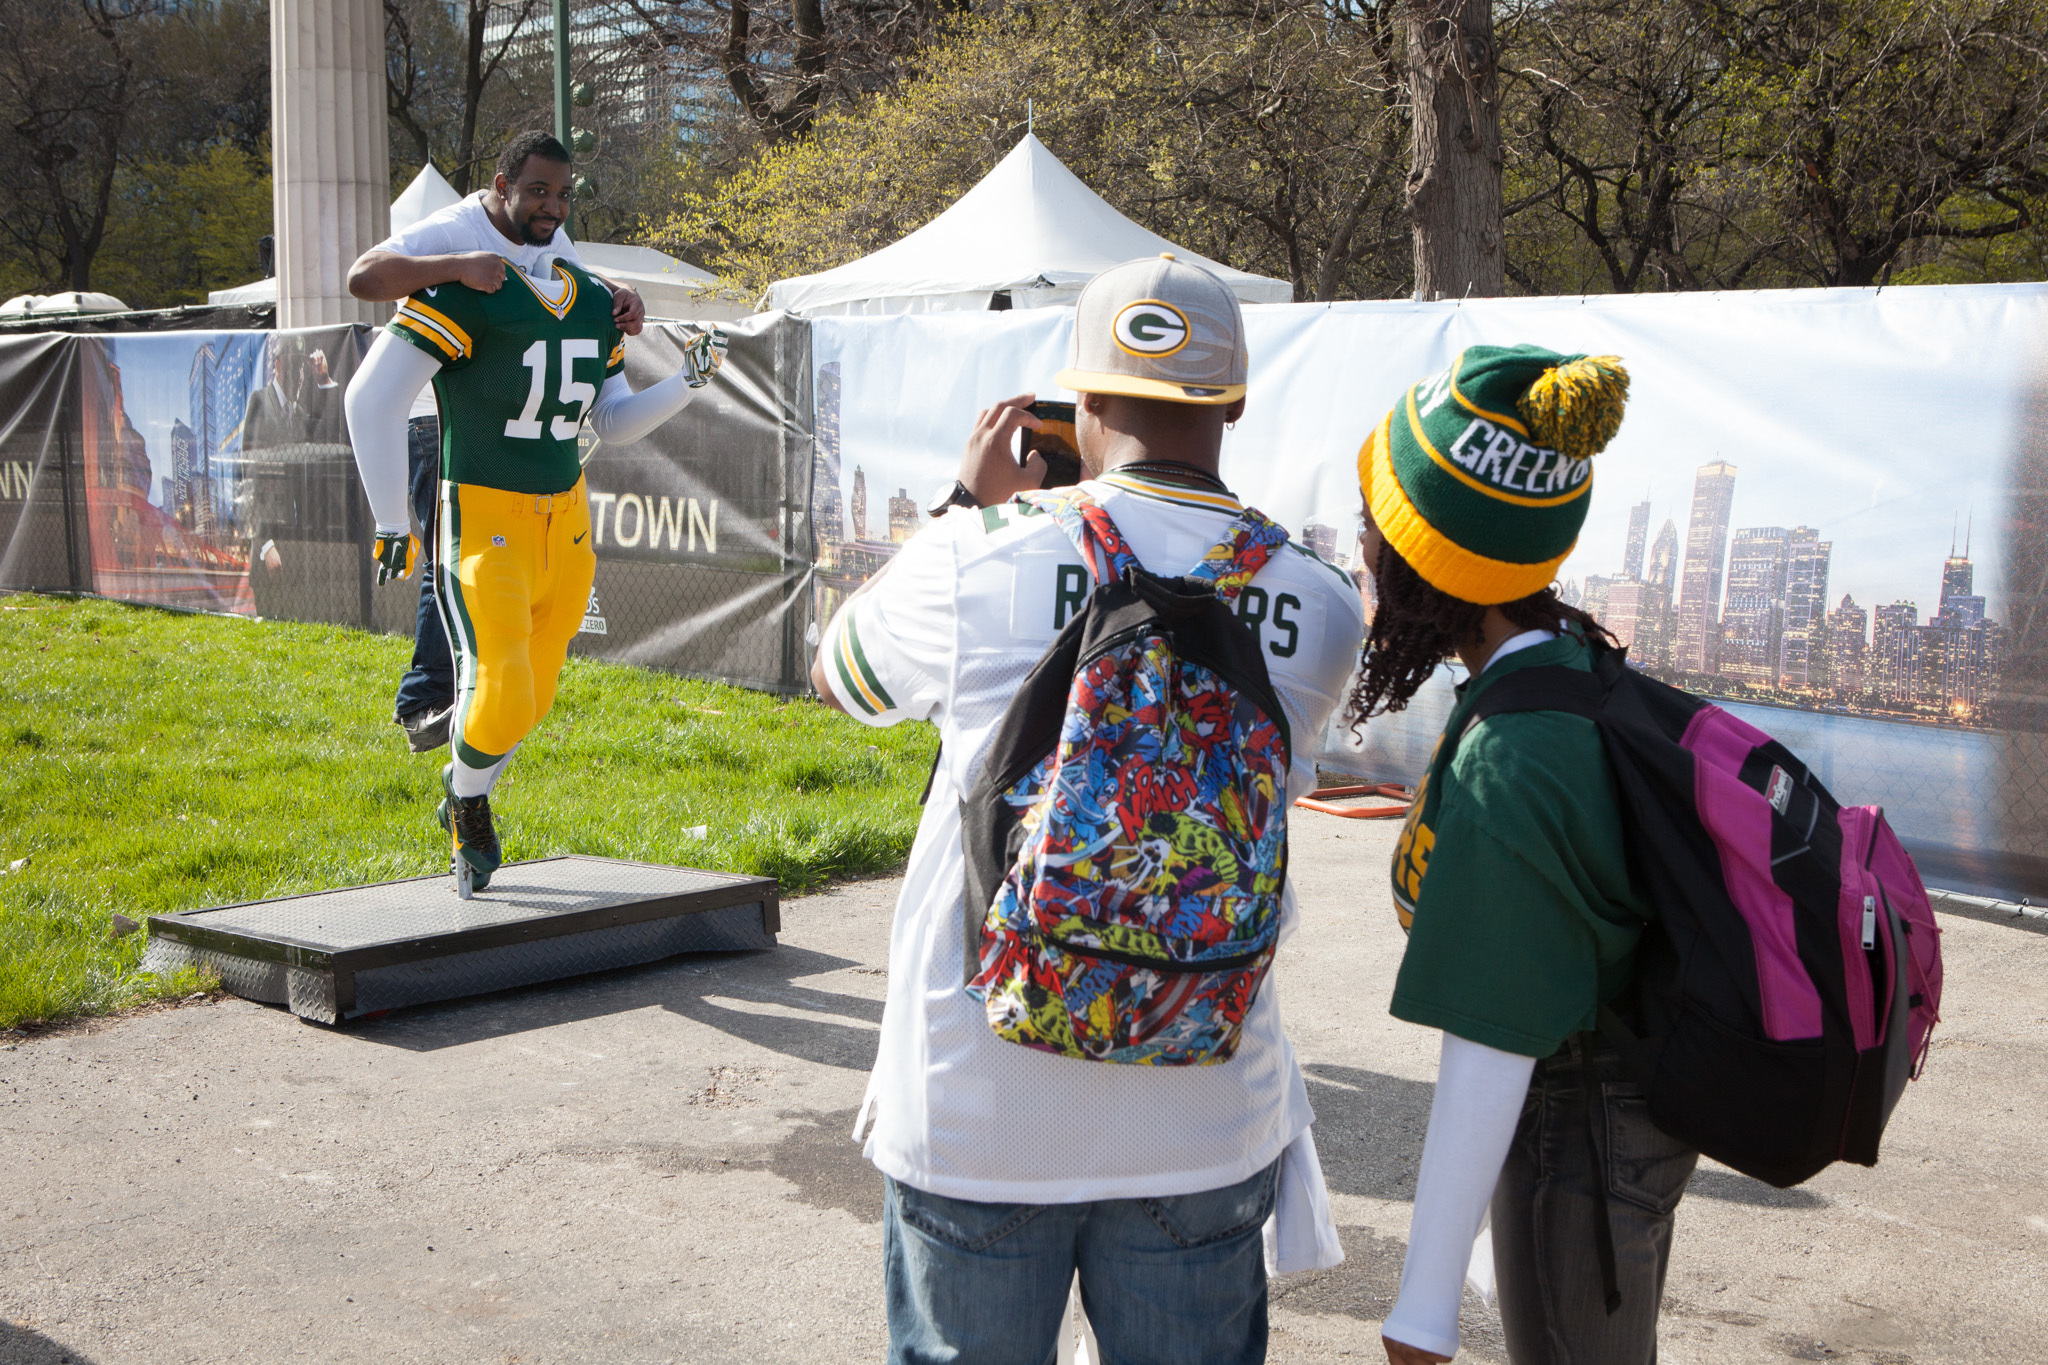 Football fans show off their team spirit in Grant Park at NFL Draft Town, April 30, 2015.